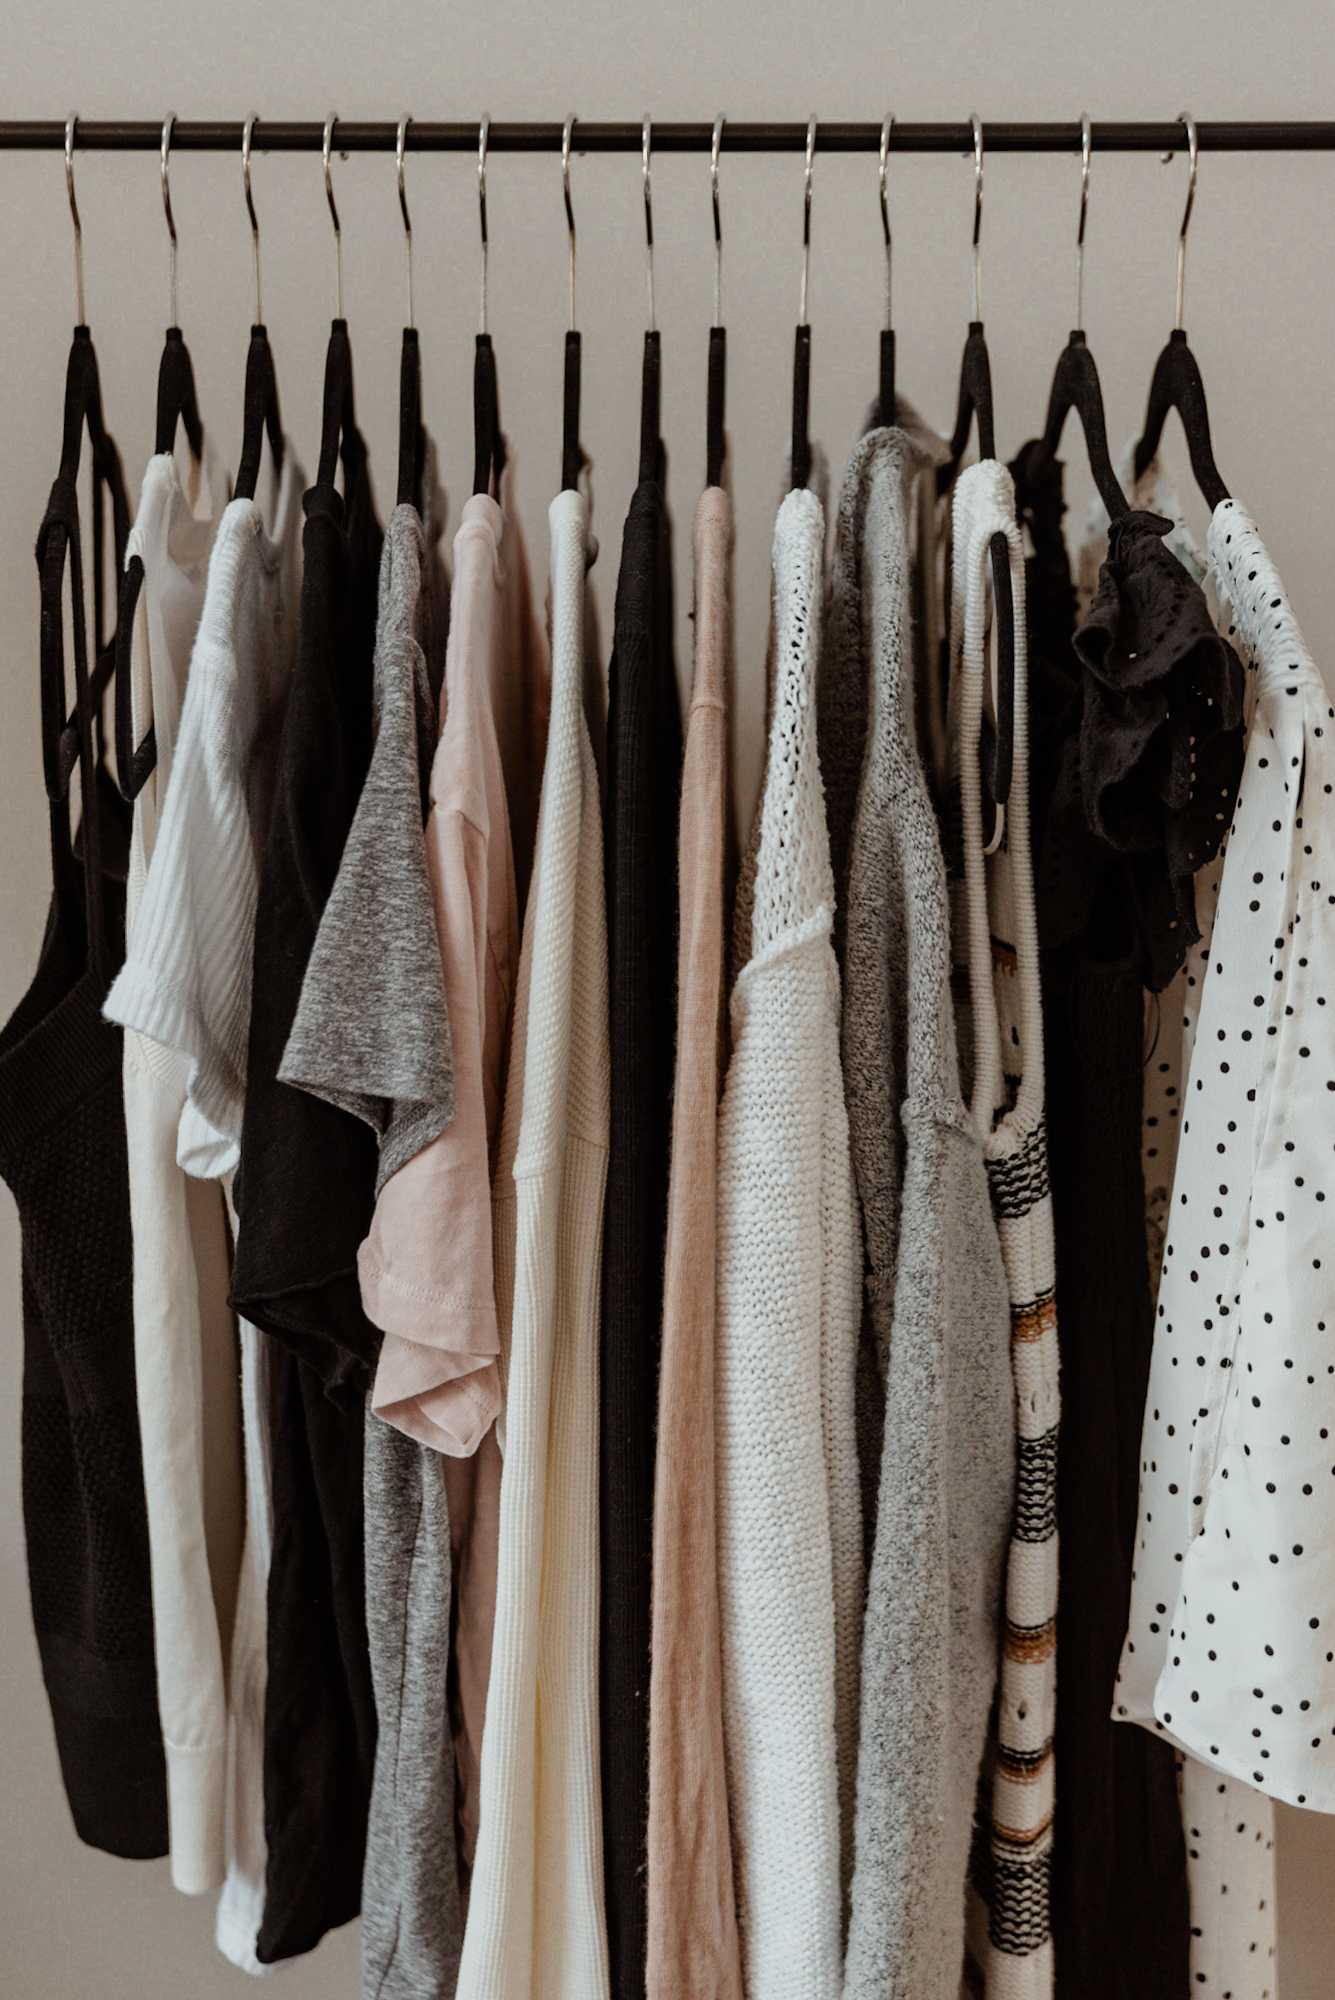 A sample of neutral-colored capsule wardrobe basics including tops, bottoms, dresses, and jumpsuits.